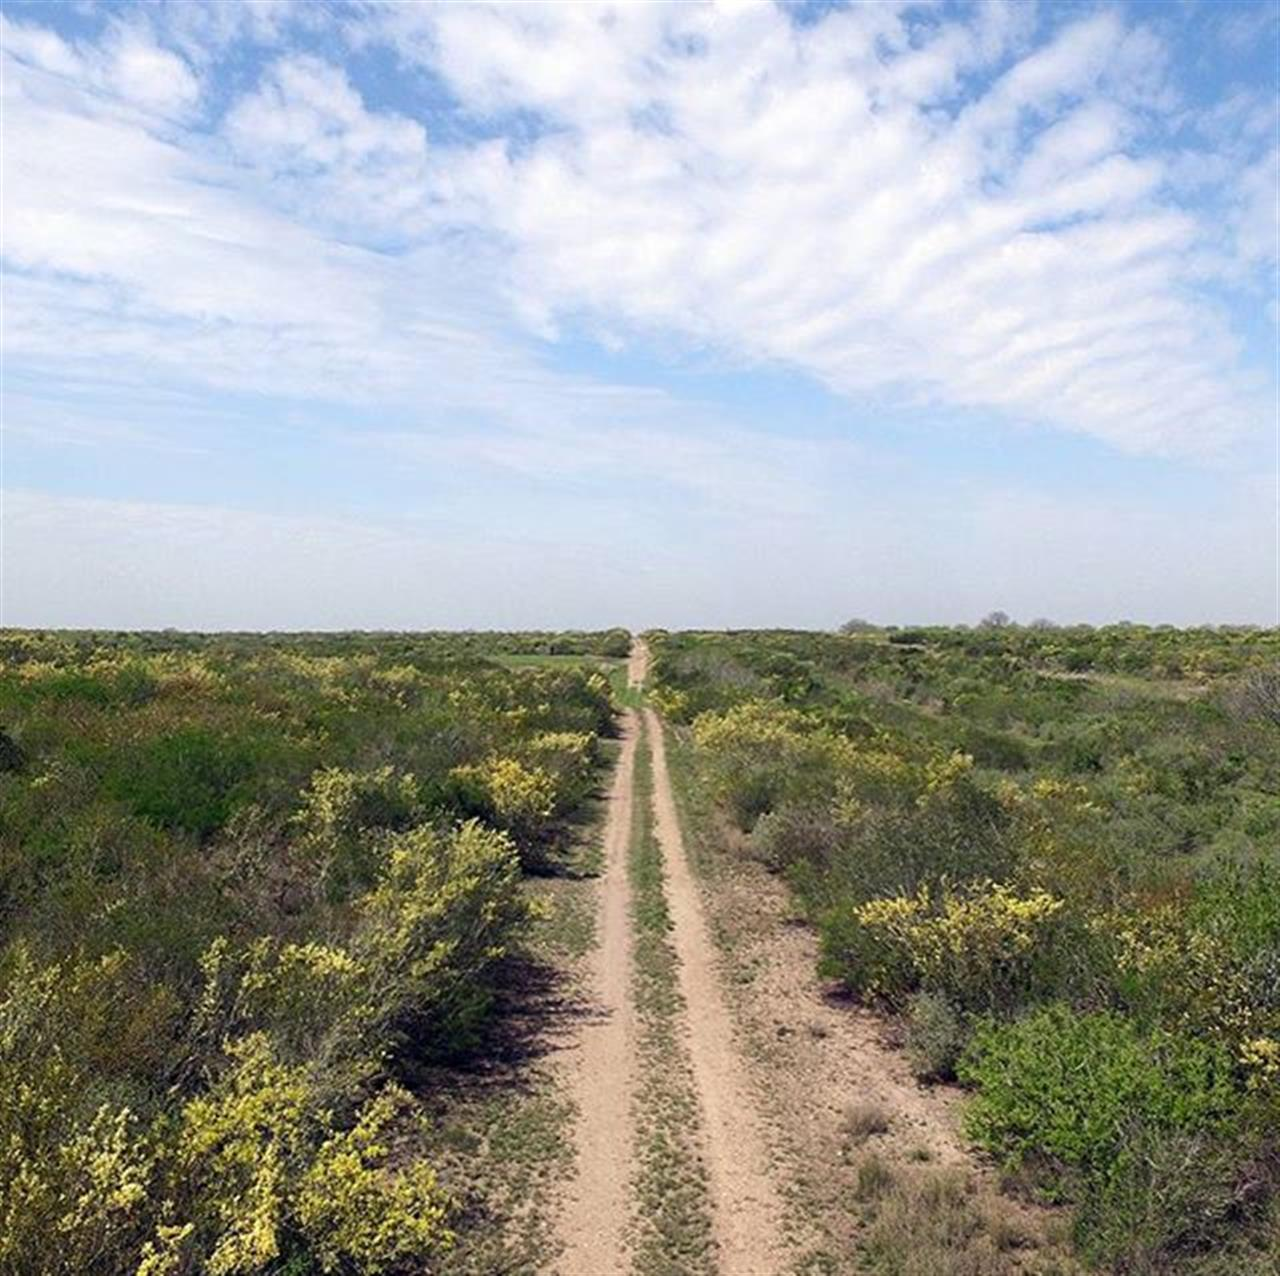 #RANCHROUNDUP 840 Ranch | Live Oak County | Approx. 840 acres listed by @westandswoperanches. The 840 Ranch is a well-located, high fenced hunting ranch less than an hour and fifteen minutes away from San Antonio. #TheVeryBest